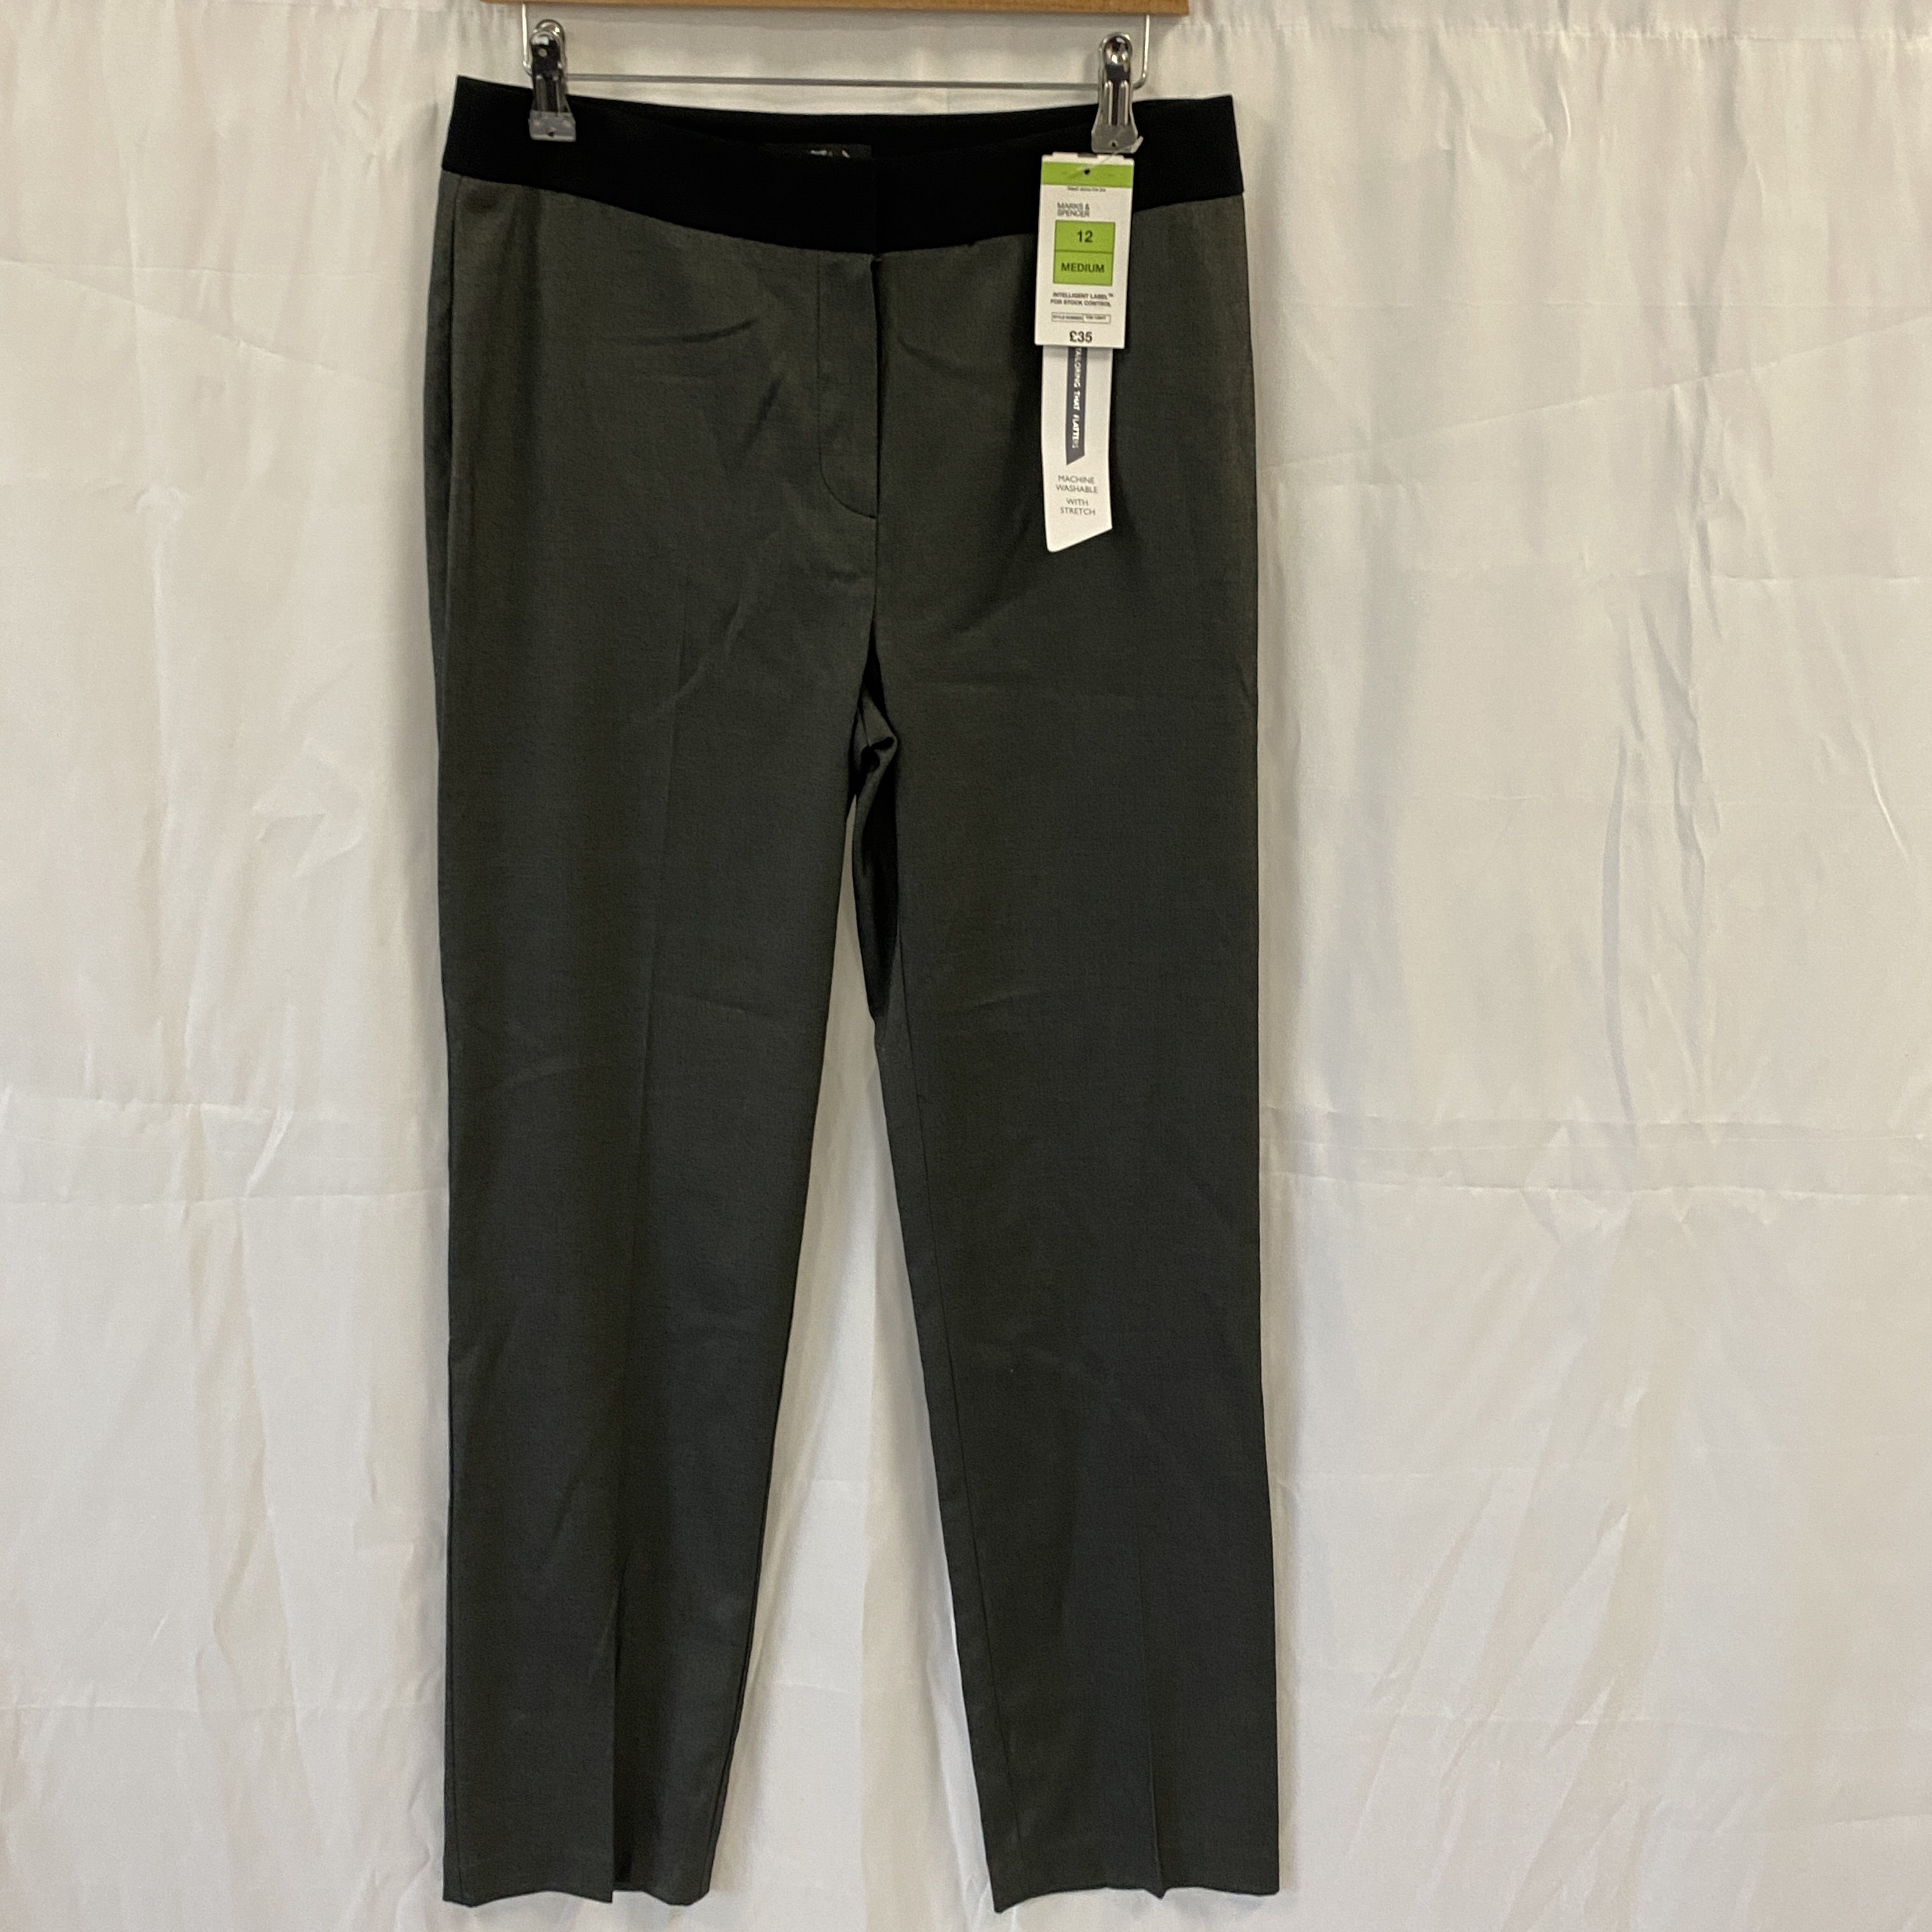 Brand New Grey Trousers - Size 12